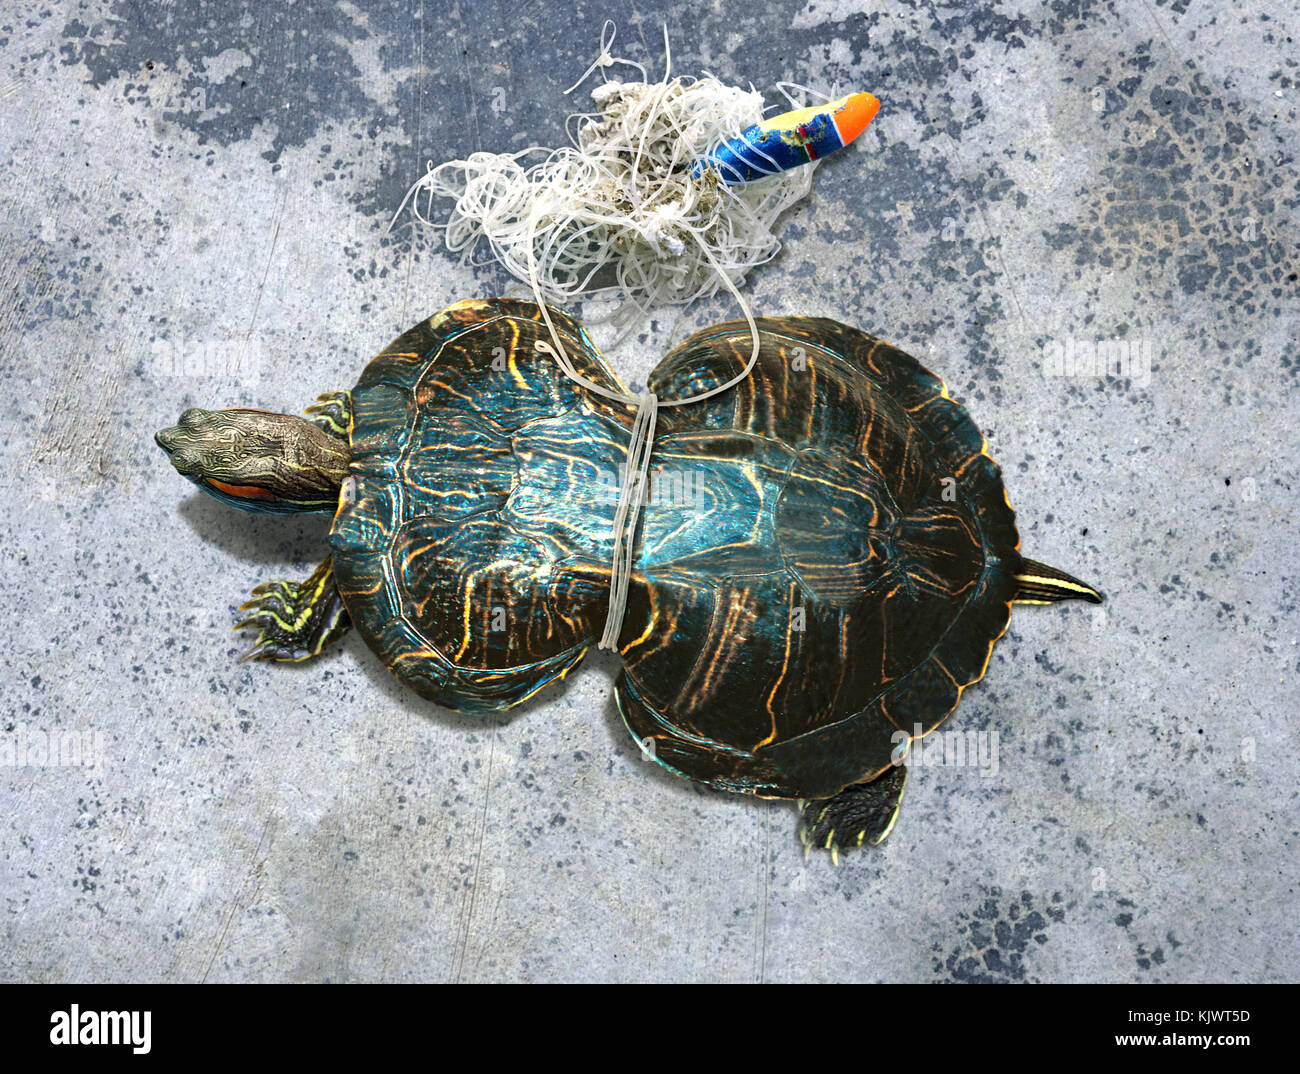 Red-eared slider, Trachemys scripta elegans, entangled with fishing gear. Notice the deformed shell because its - Stock Image